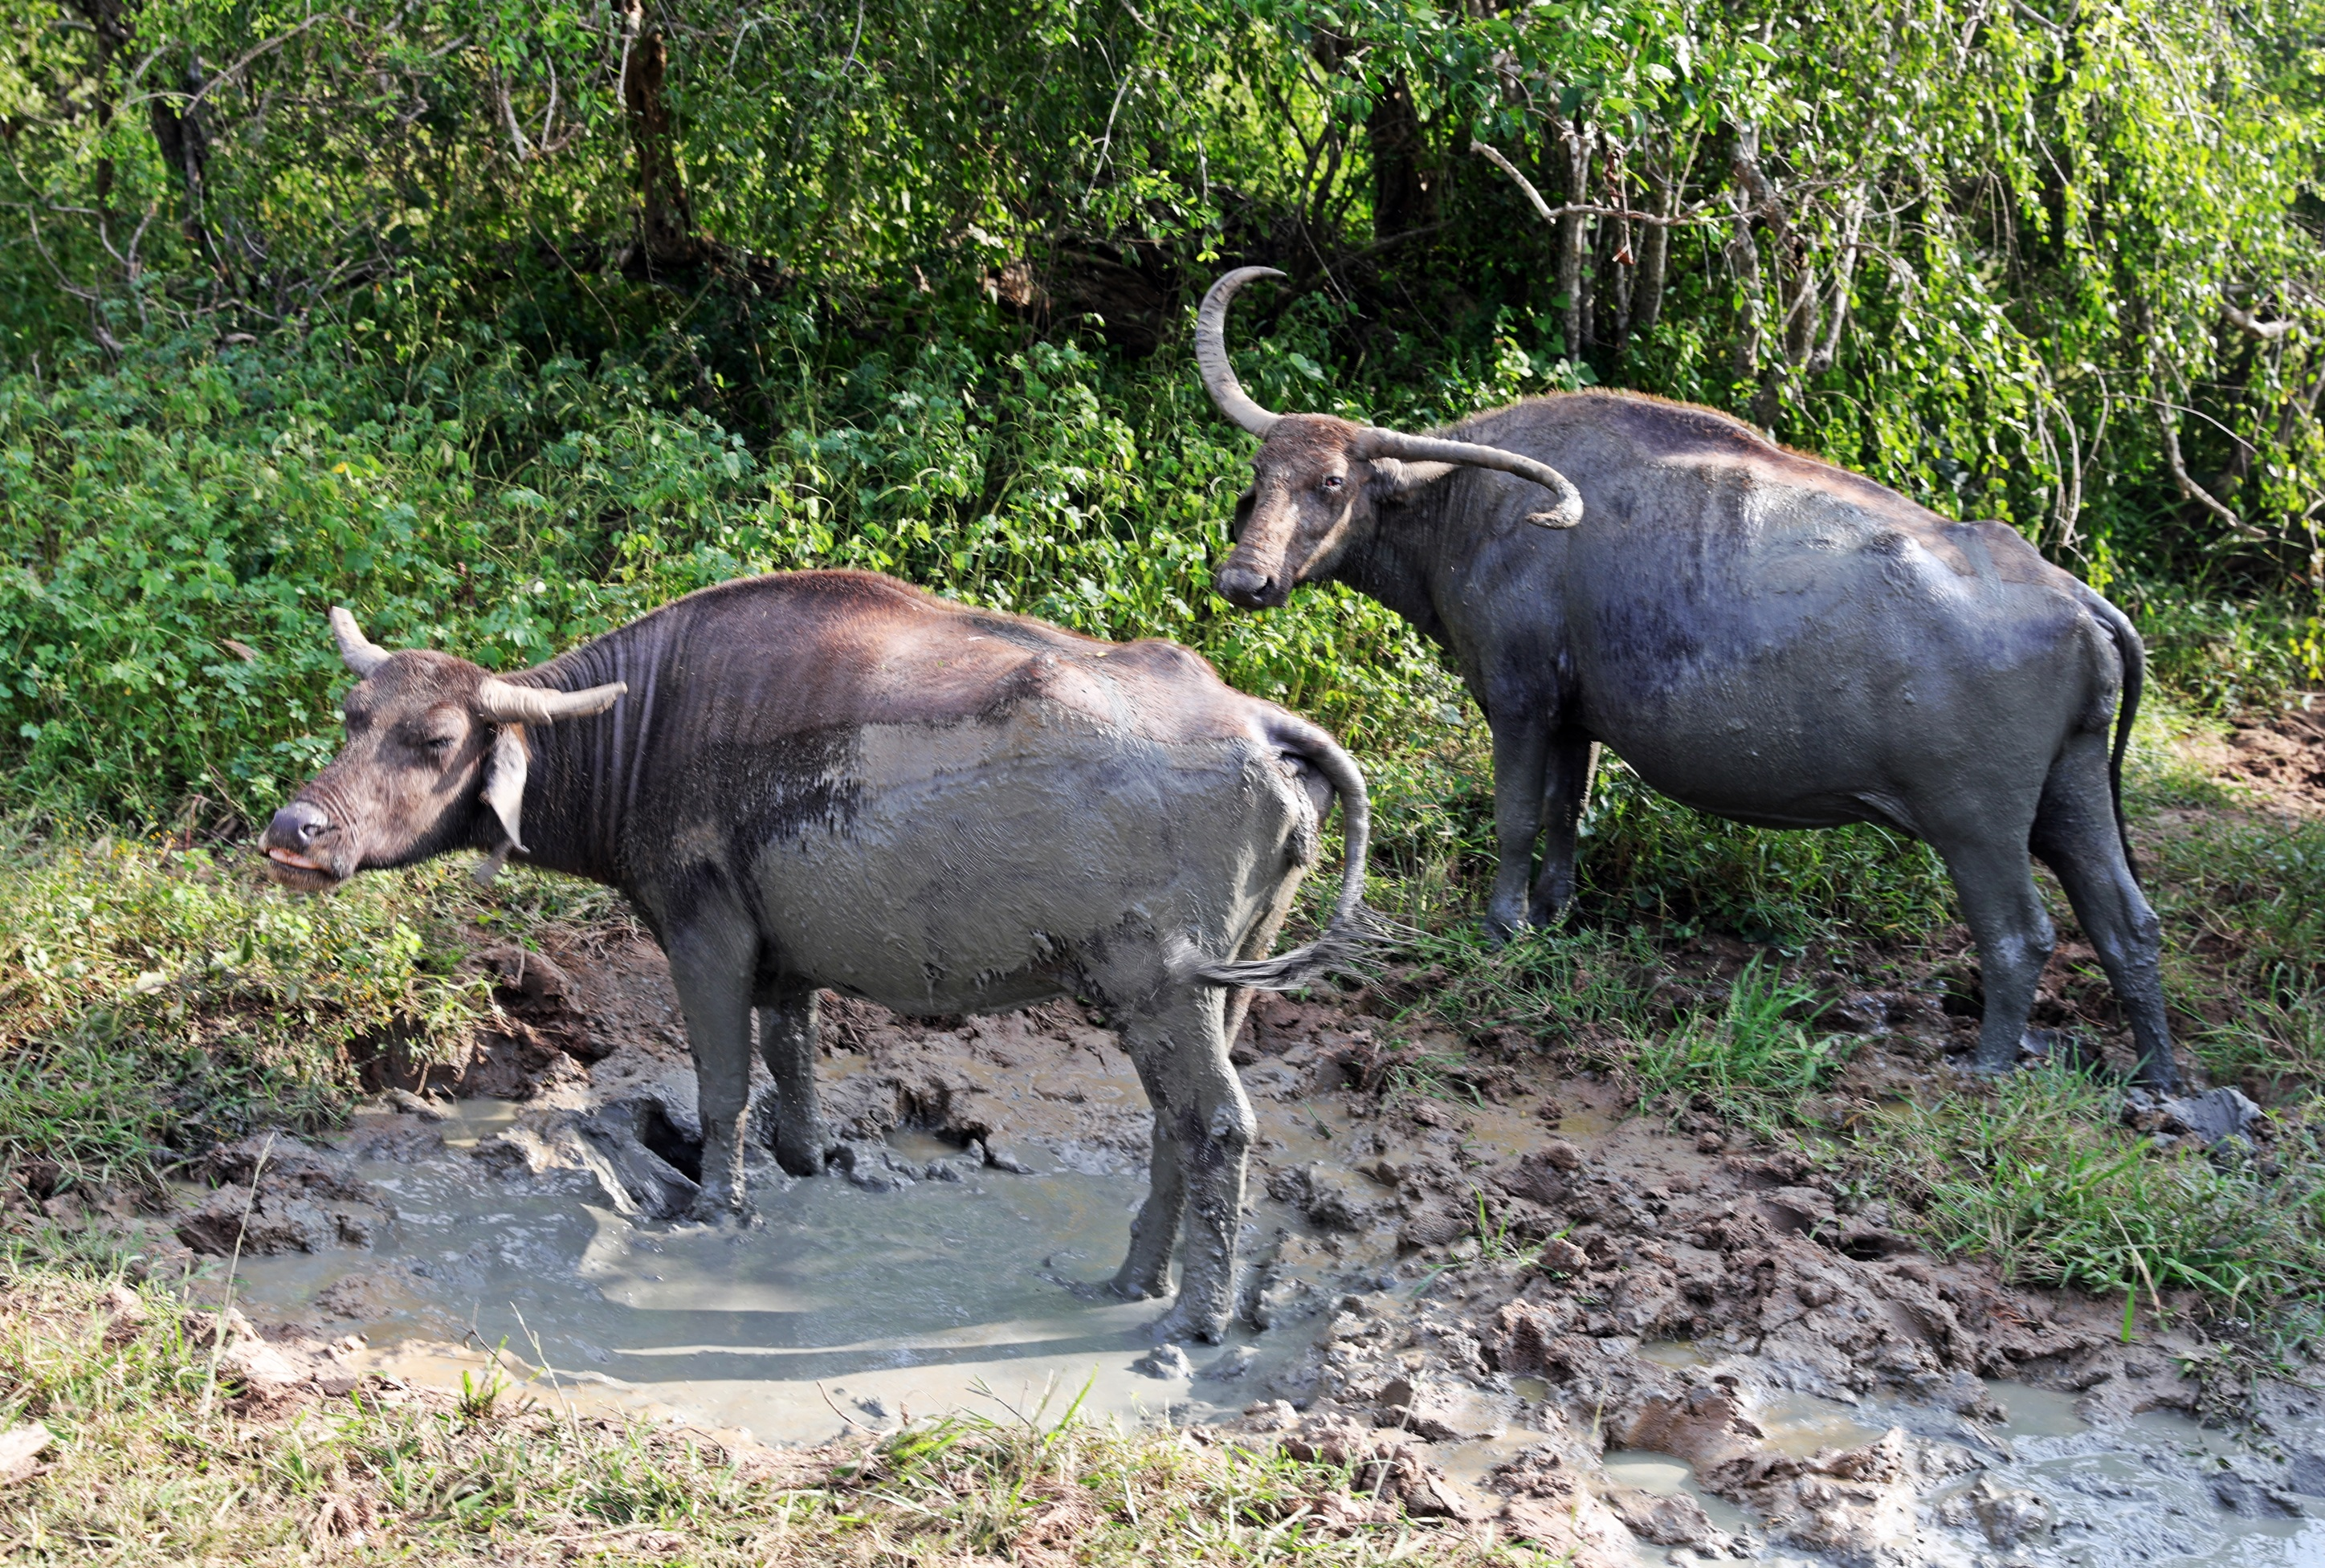 Water Buffalo with crazy horns, Yala National Park